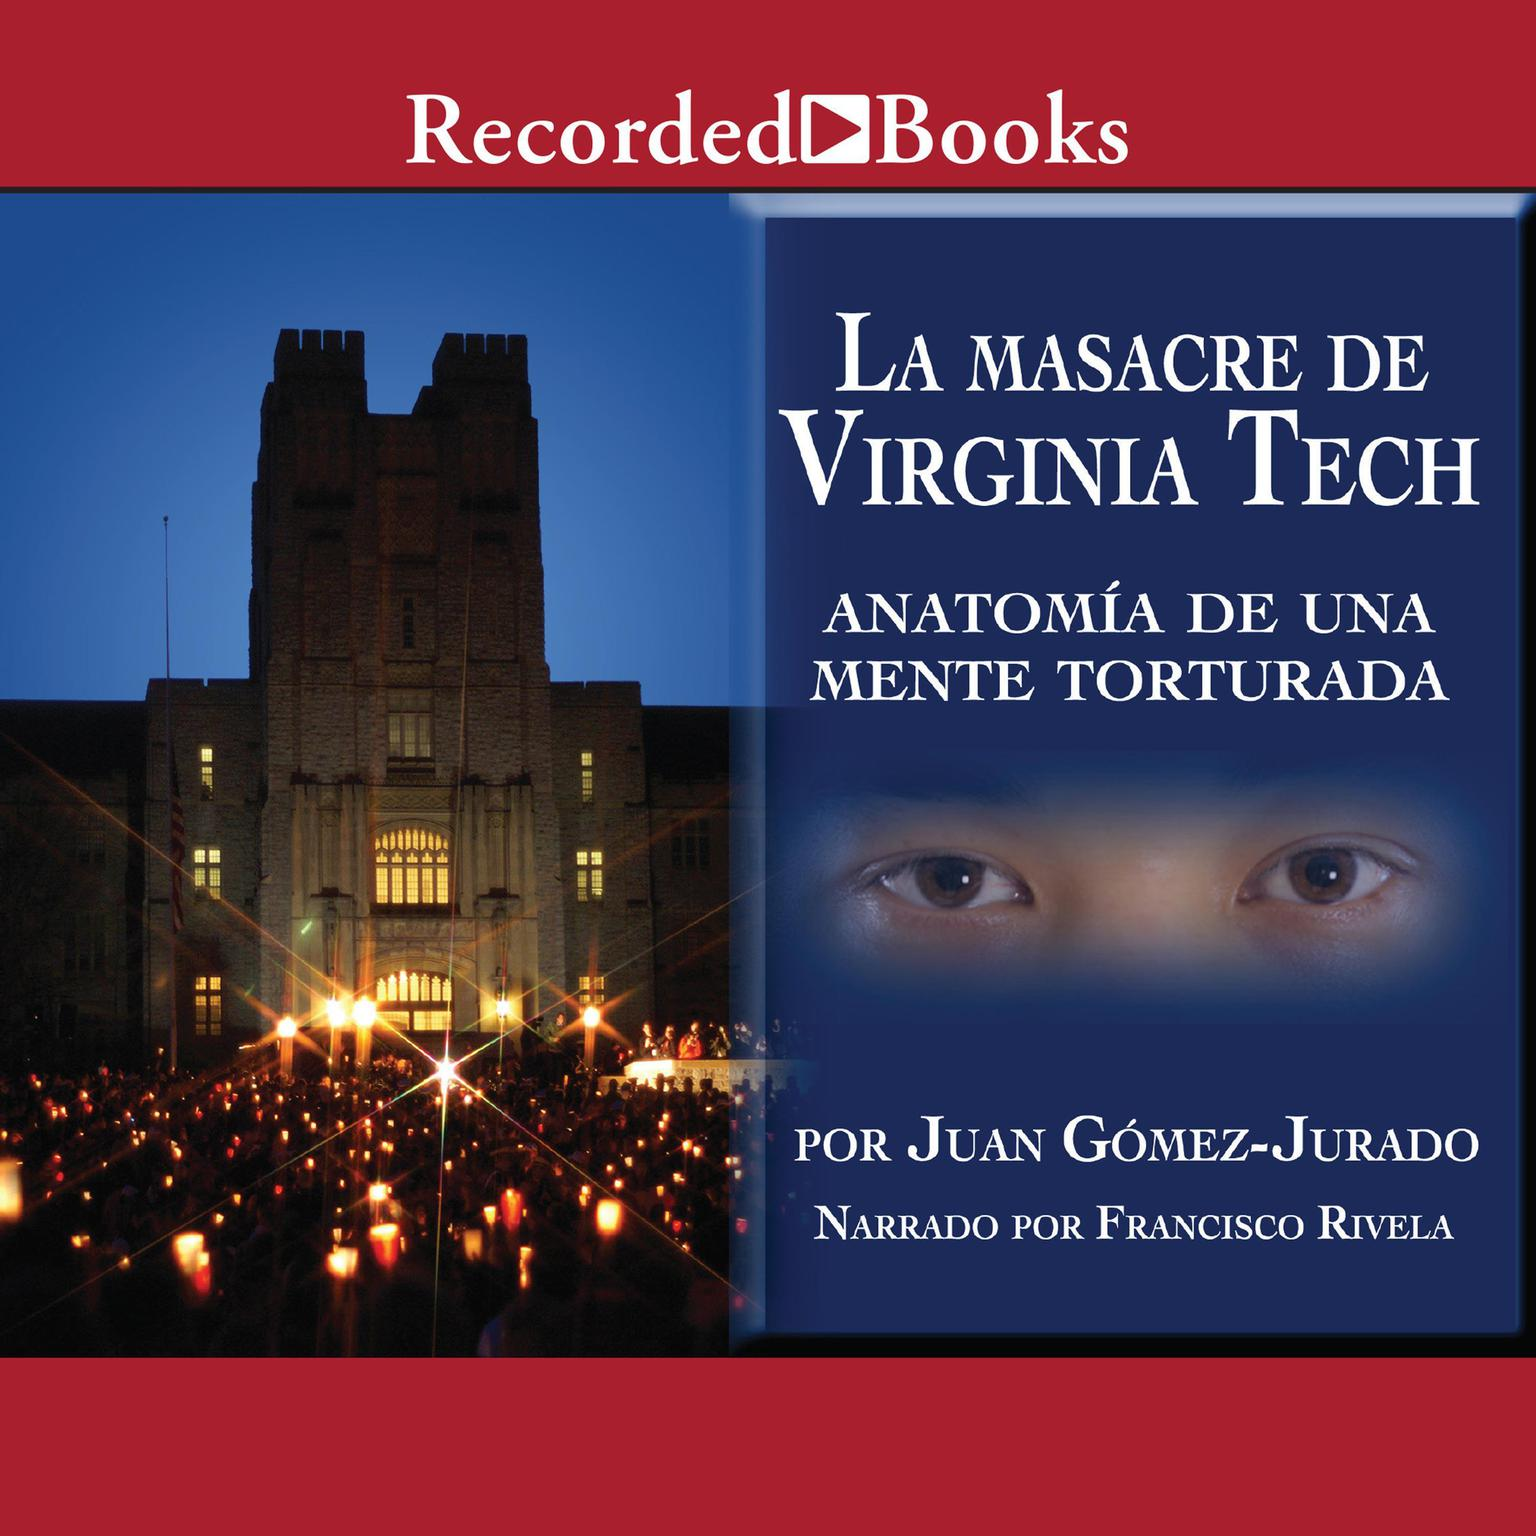 La masacre de Virginia Tech - Audiobook | Listen Instantly!